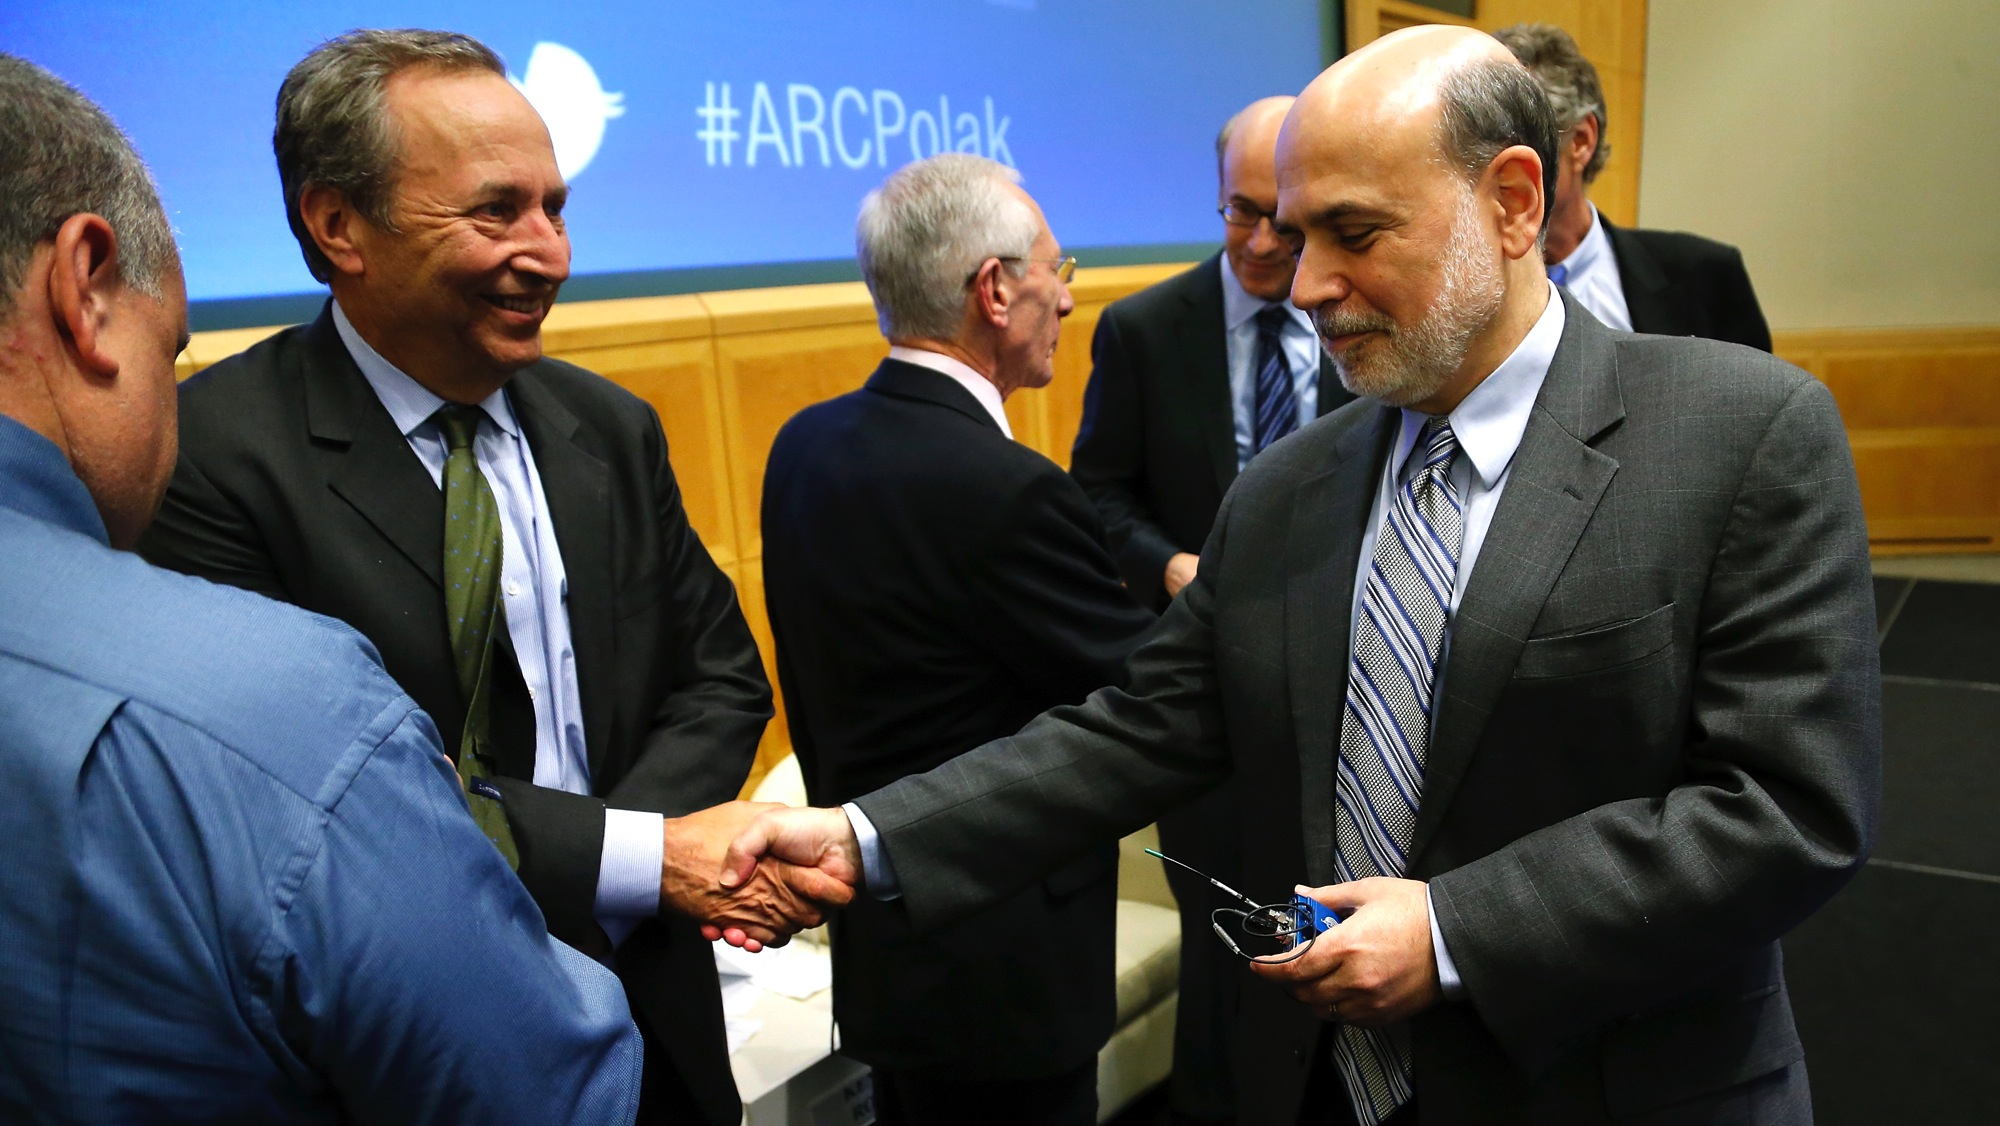 Harvard University President Emeritus Larry Summers (2nd L) shakes hands with U.S.Federal Reserve Chairman Ben Bernanke (R) after they participated in a panel discussion on financial crises during the International Monetary Fund (IMF) Jacques Polak Annual Research Conference in Washington, November 8, 2013. REUTERS/Jonathan Ernst (UNITED STATES - Tags: POLITICS BUSINESS)